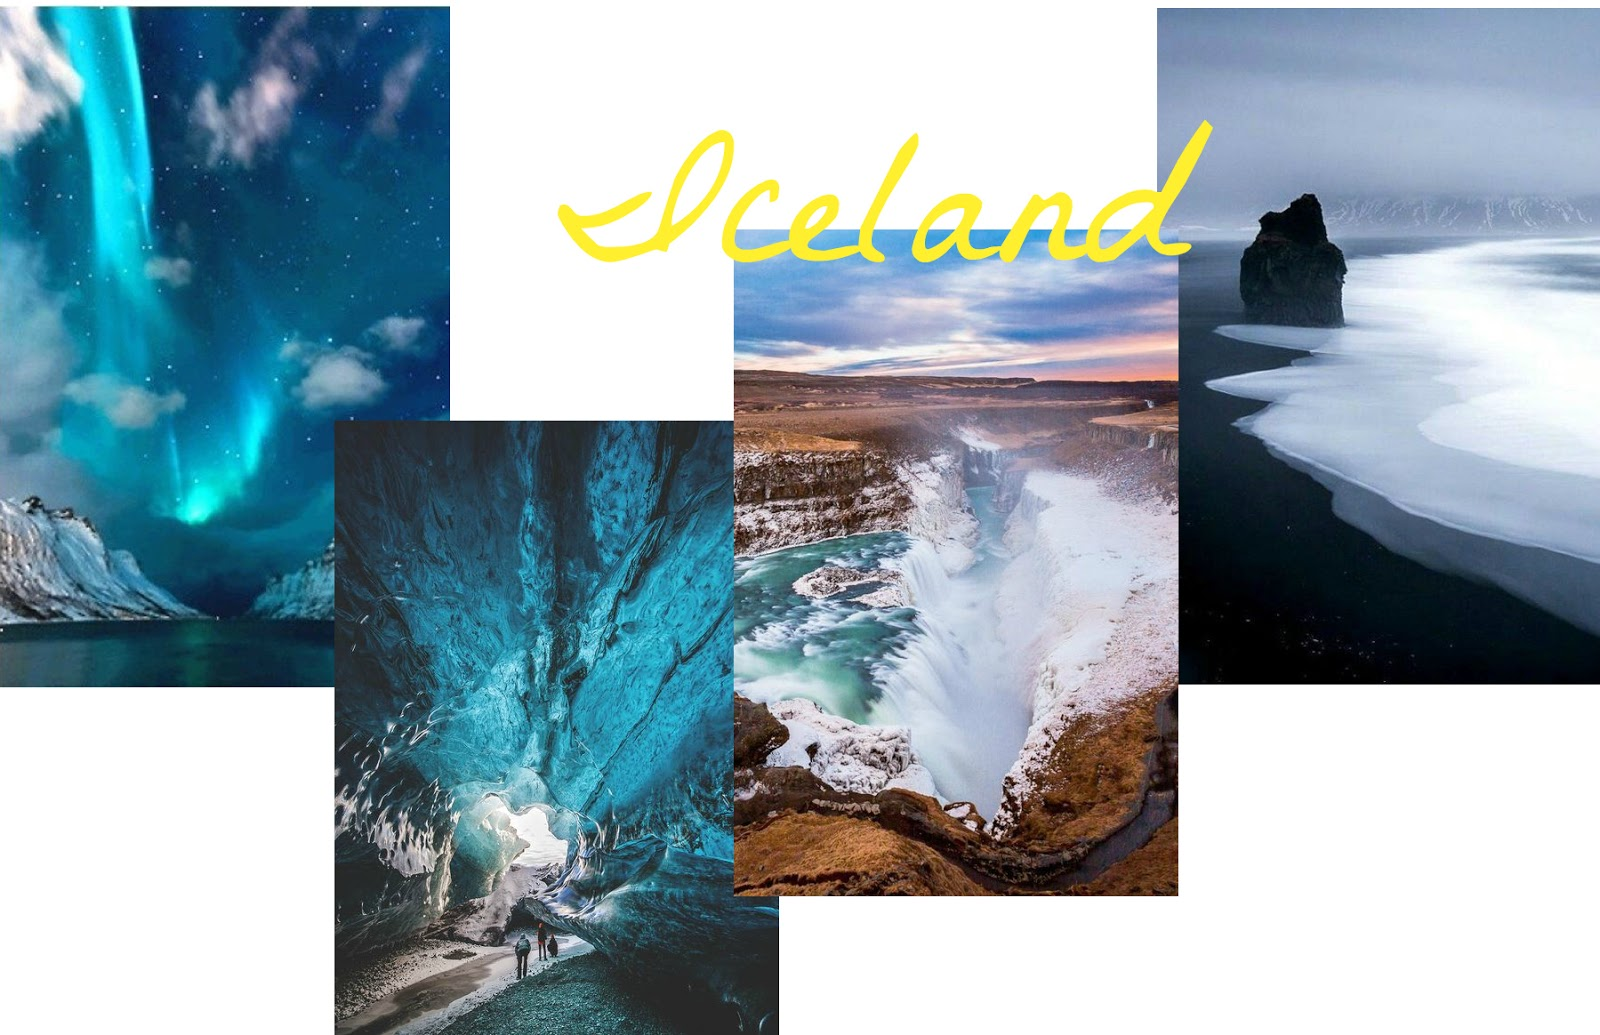 Travel Bucket List 6 places to see in 2017 Island Iceland Reykjavik www.theblondelion.com